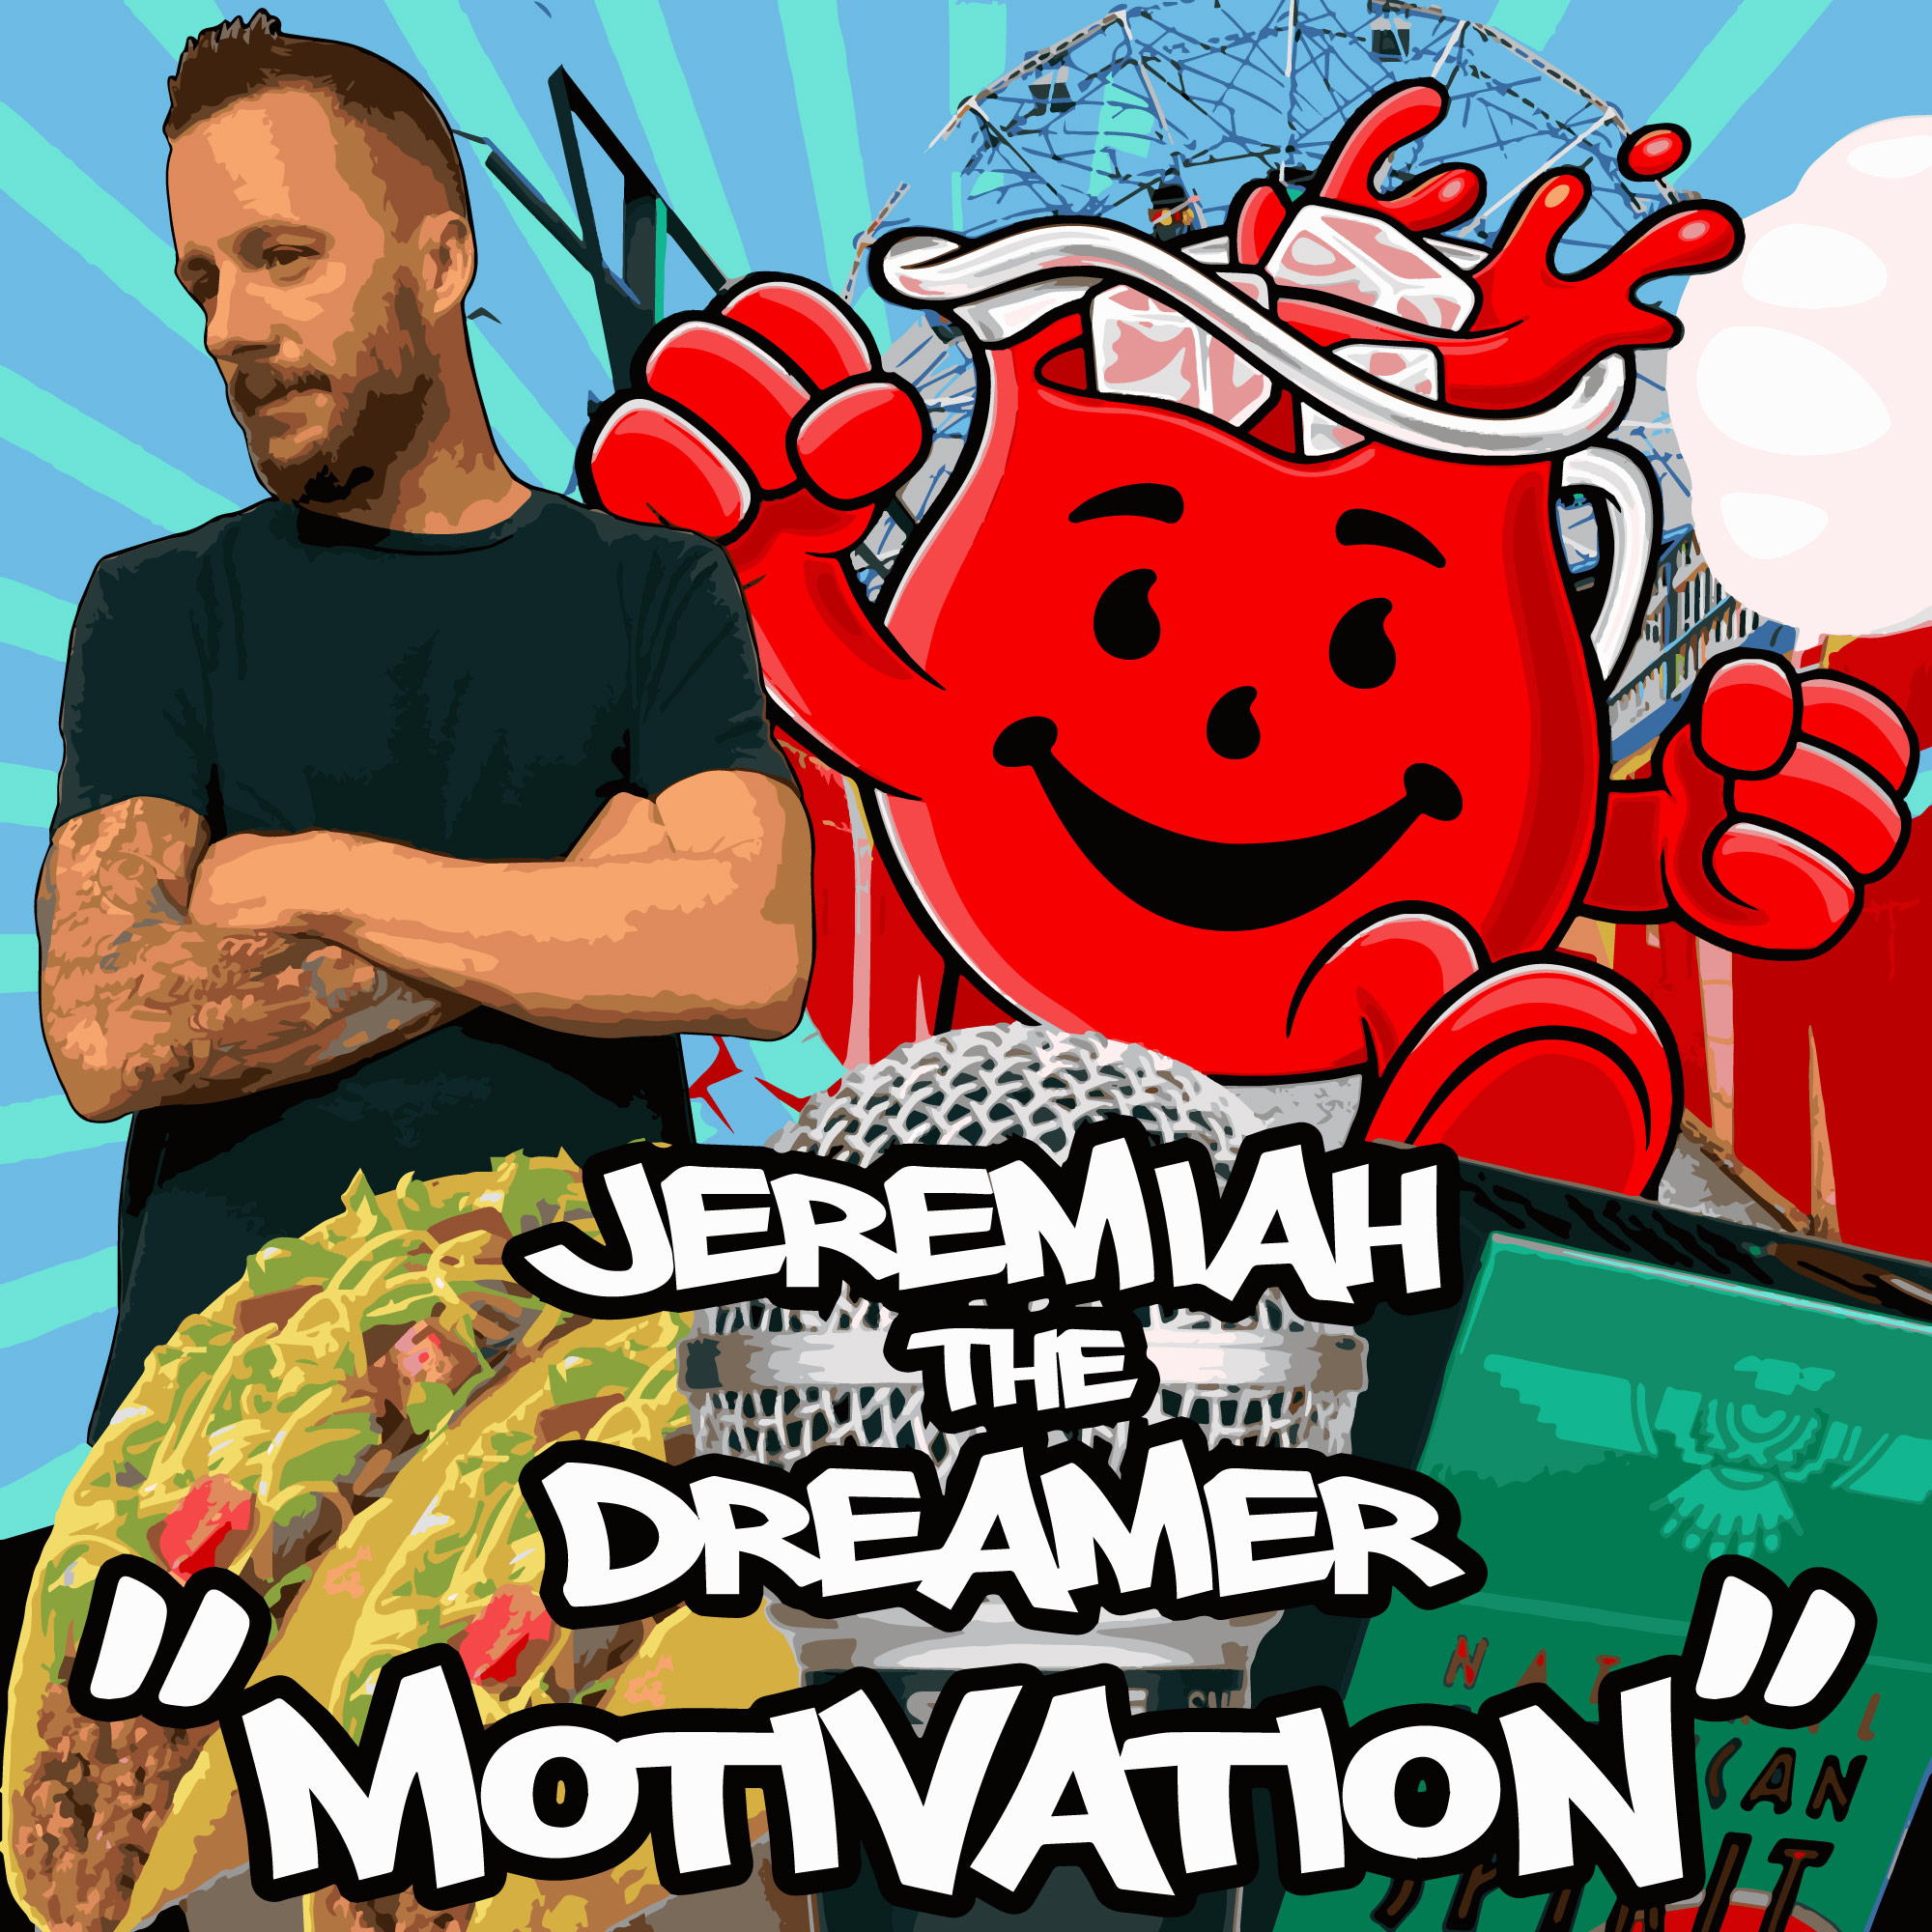 """Motivation"" by Jeremiah the Dreamer"